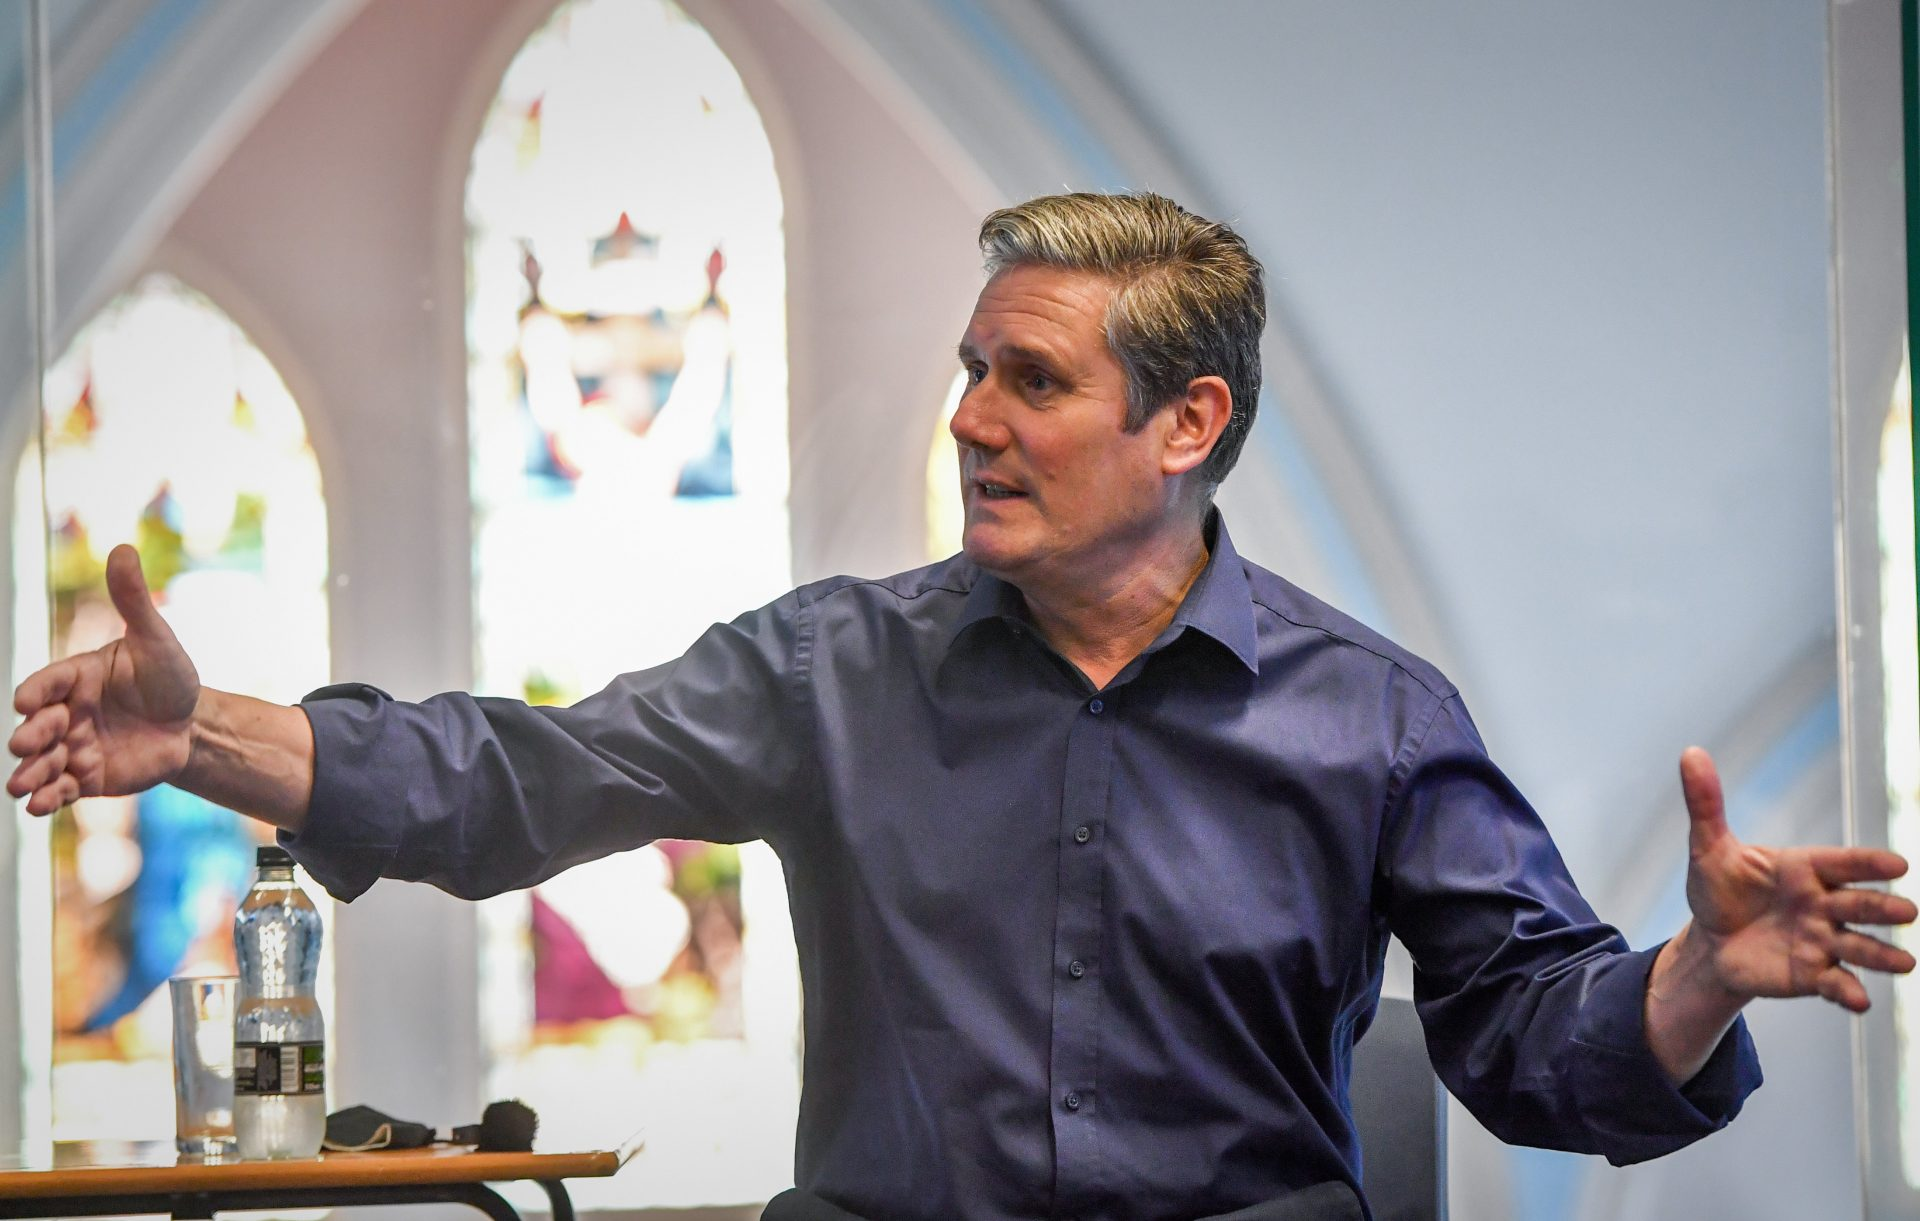 With a stained glass window in the background, Labour leader Sir Keir Starmer meets A-Level students at a Catholic academy in Blackpool Photo: Anthony Devlin/Getty Images